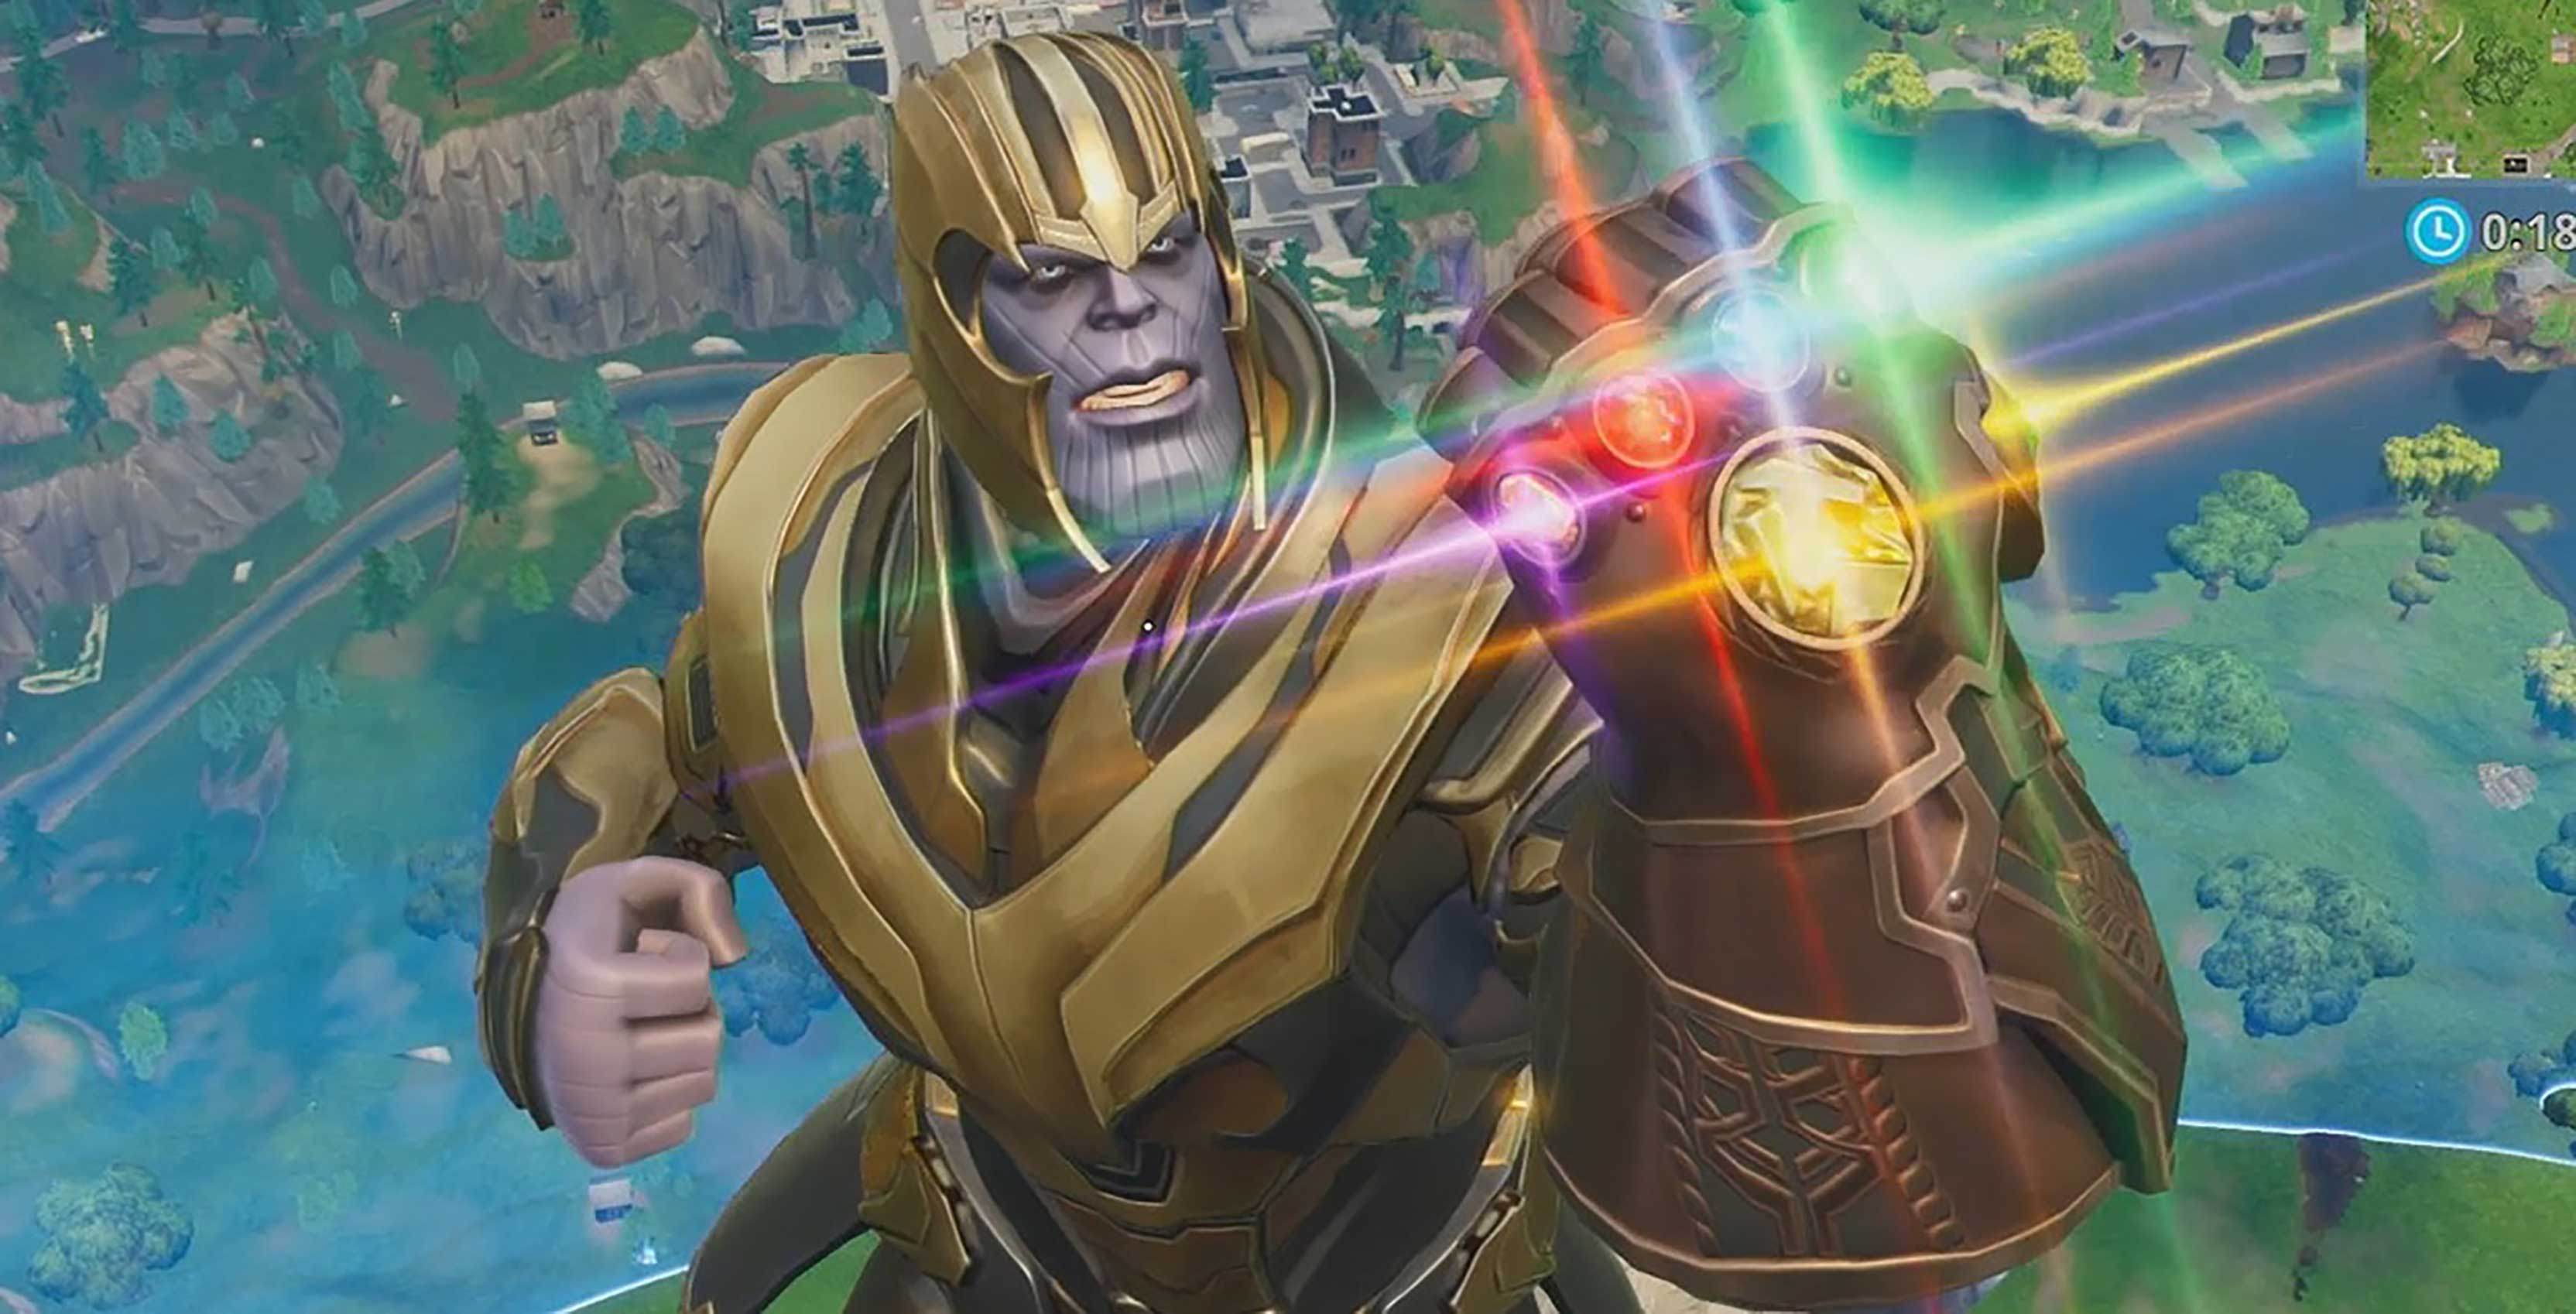 Fortnite's Avengers: Endgame event now live, brings back Thanos